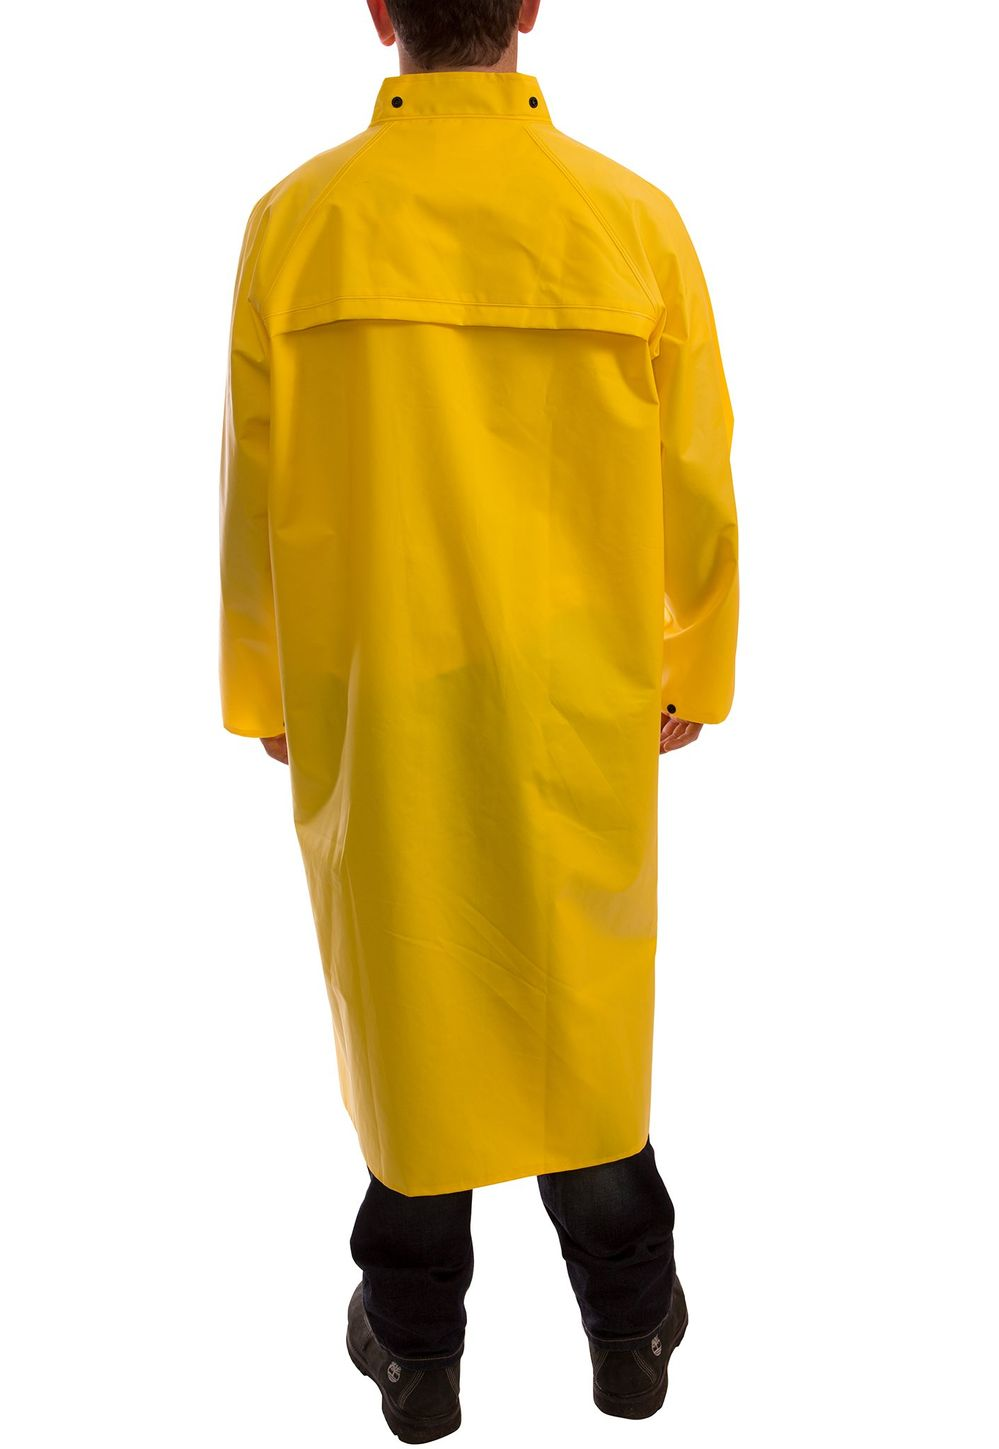 tingley-c56207-durascrim-flame-resistant-coat-pvc-coated-chemical-resistant-with-hood-snaps-48-back.jpg